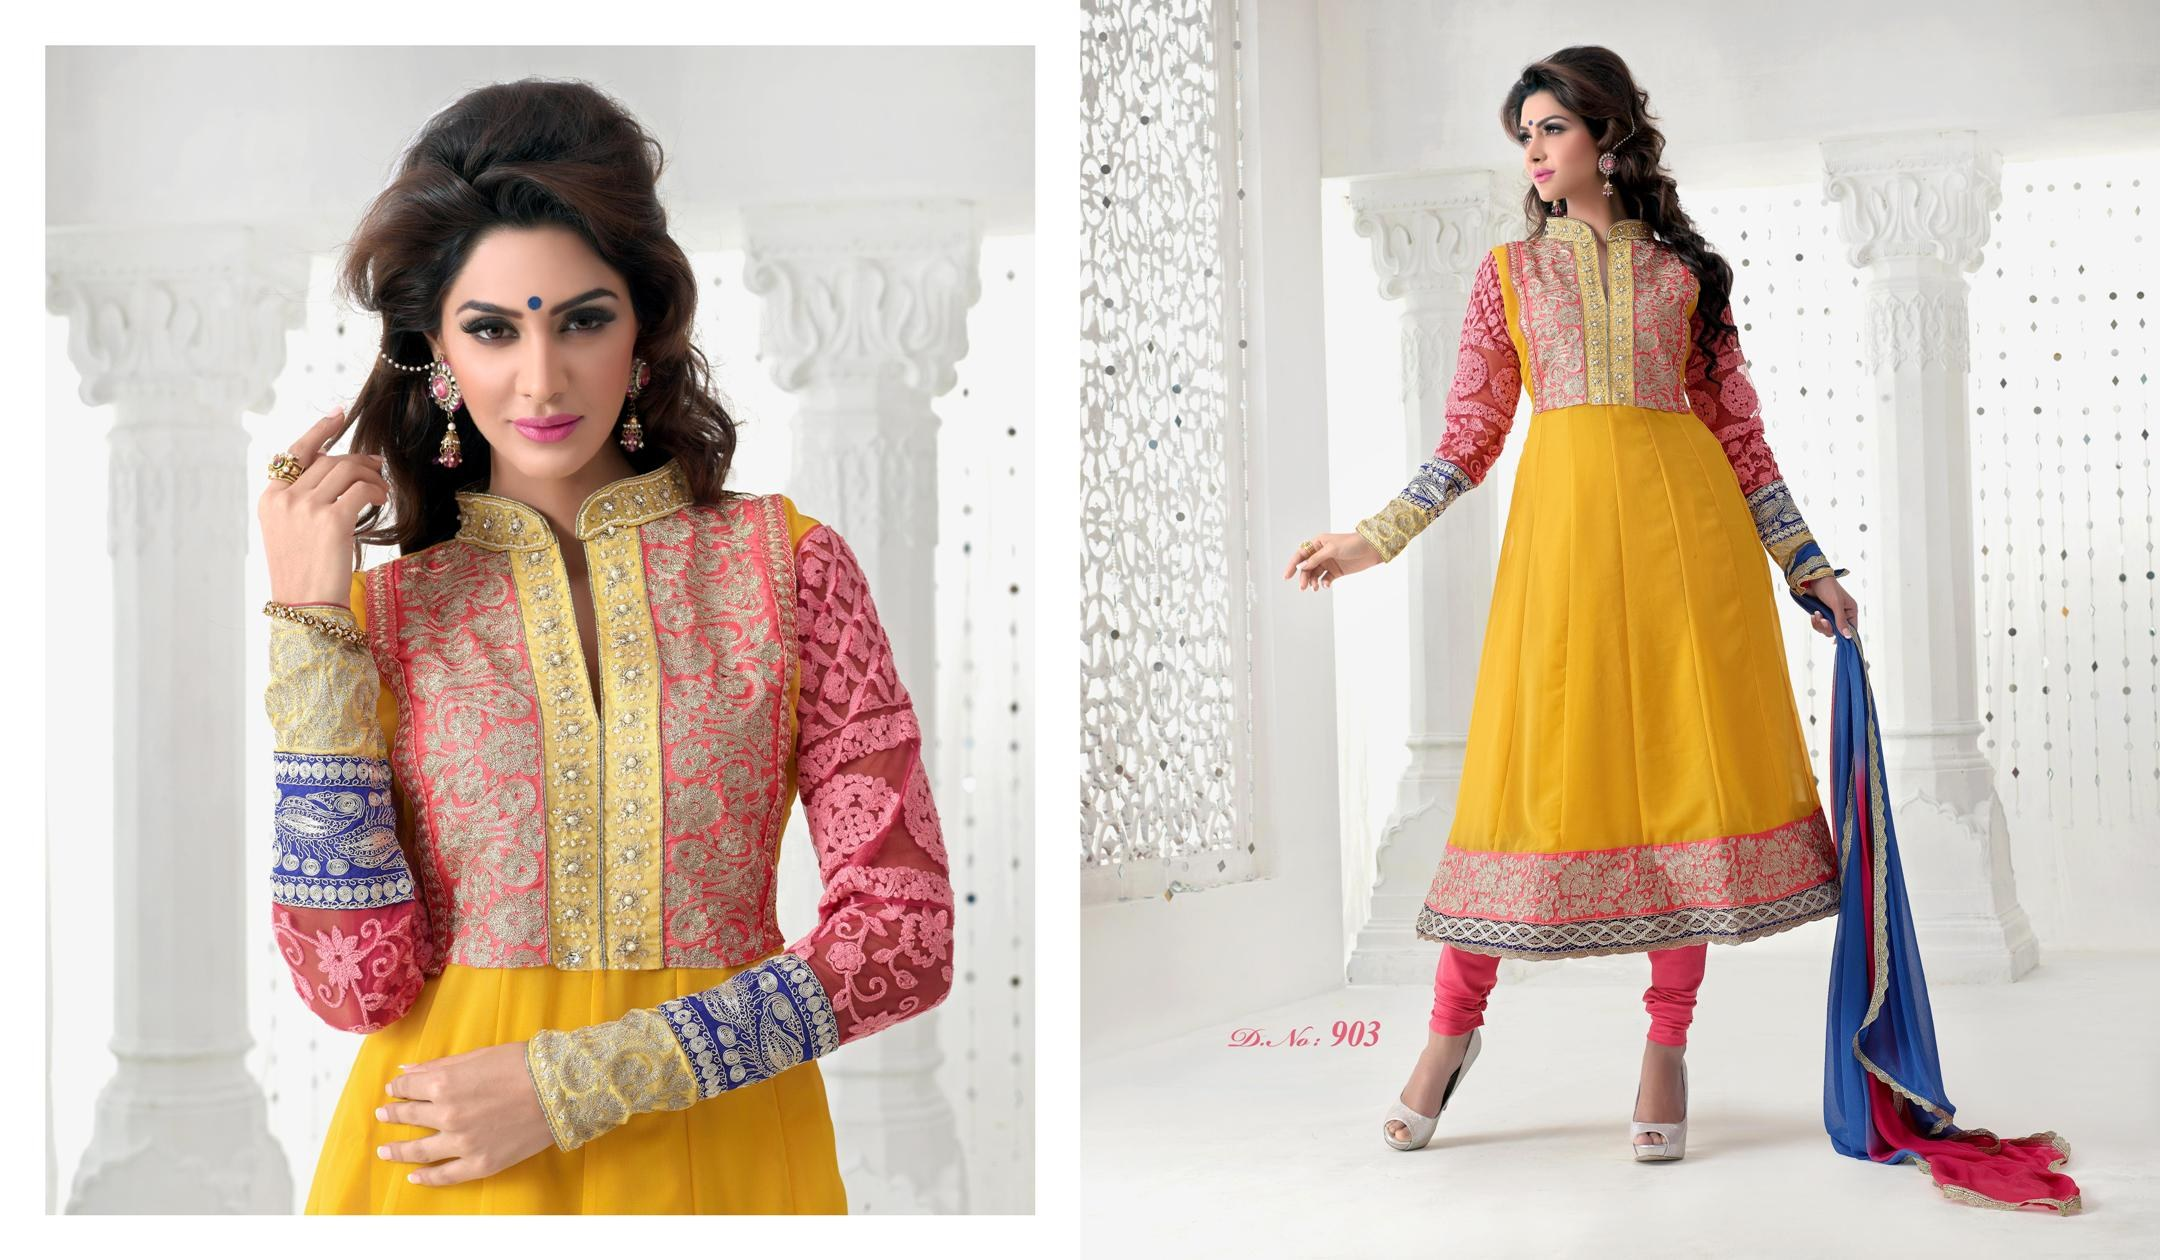 Exclusive Pakistani Designer Clothes Clothing induspride fashion